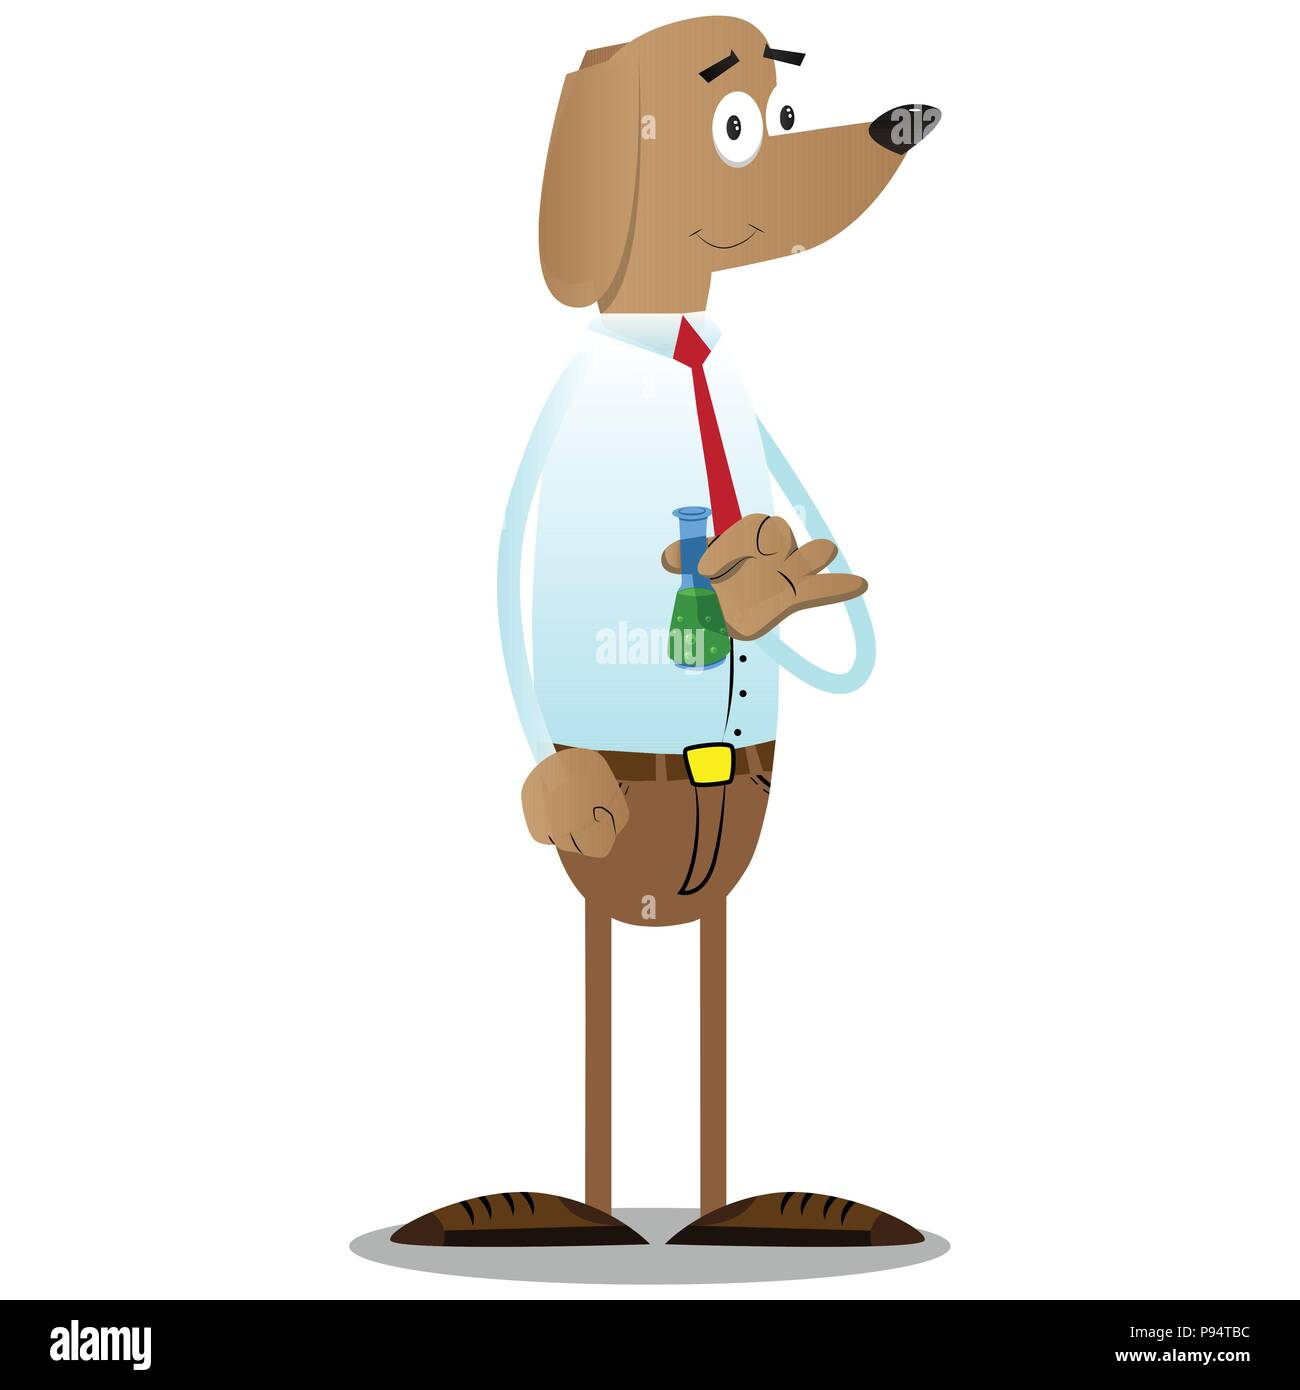 Cartoon illustrated business dog holding a test tube. - Stock Vector